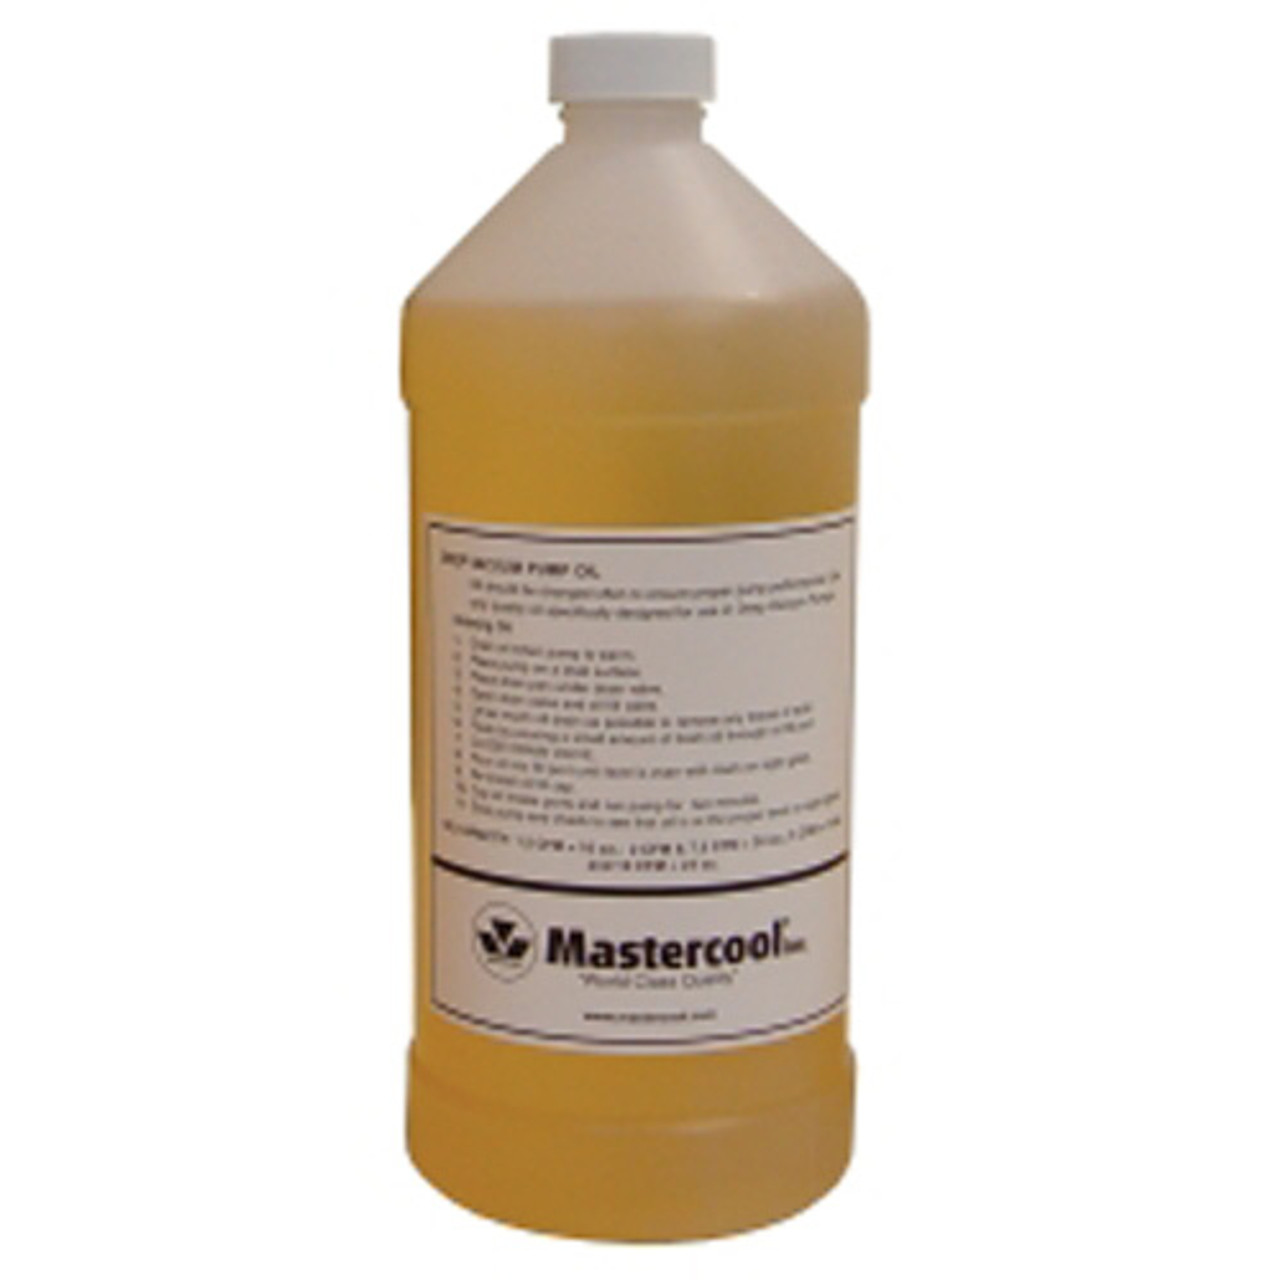 Mastercool 90032-6 32 oz  Bottle Vacuum Pump Oil